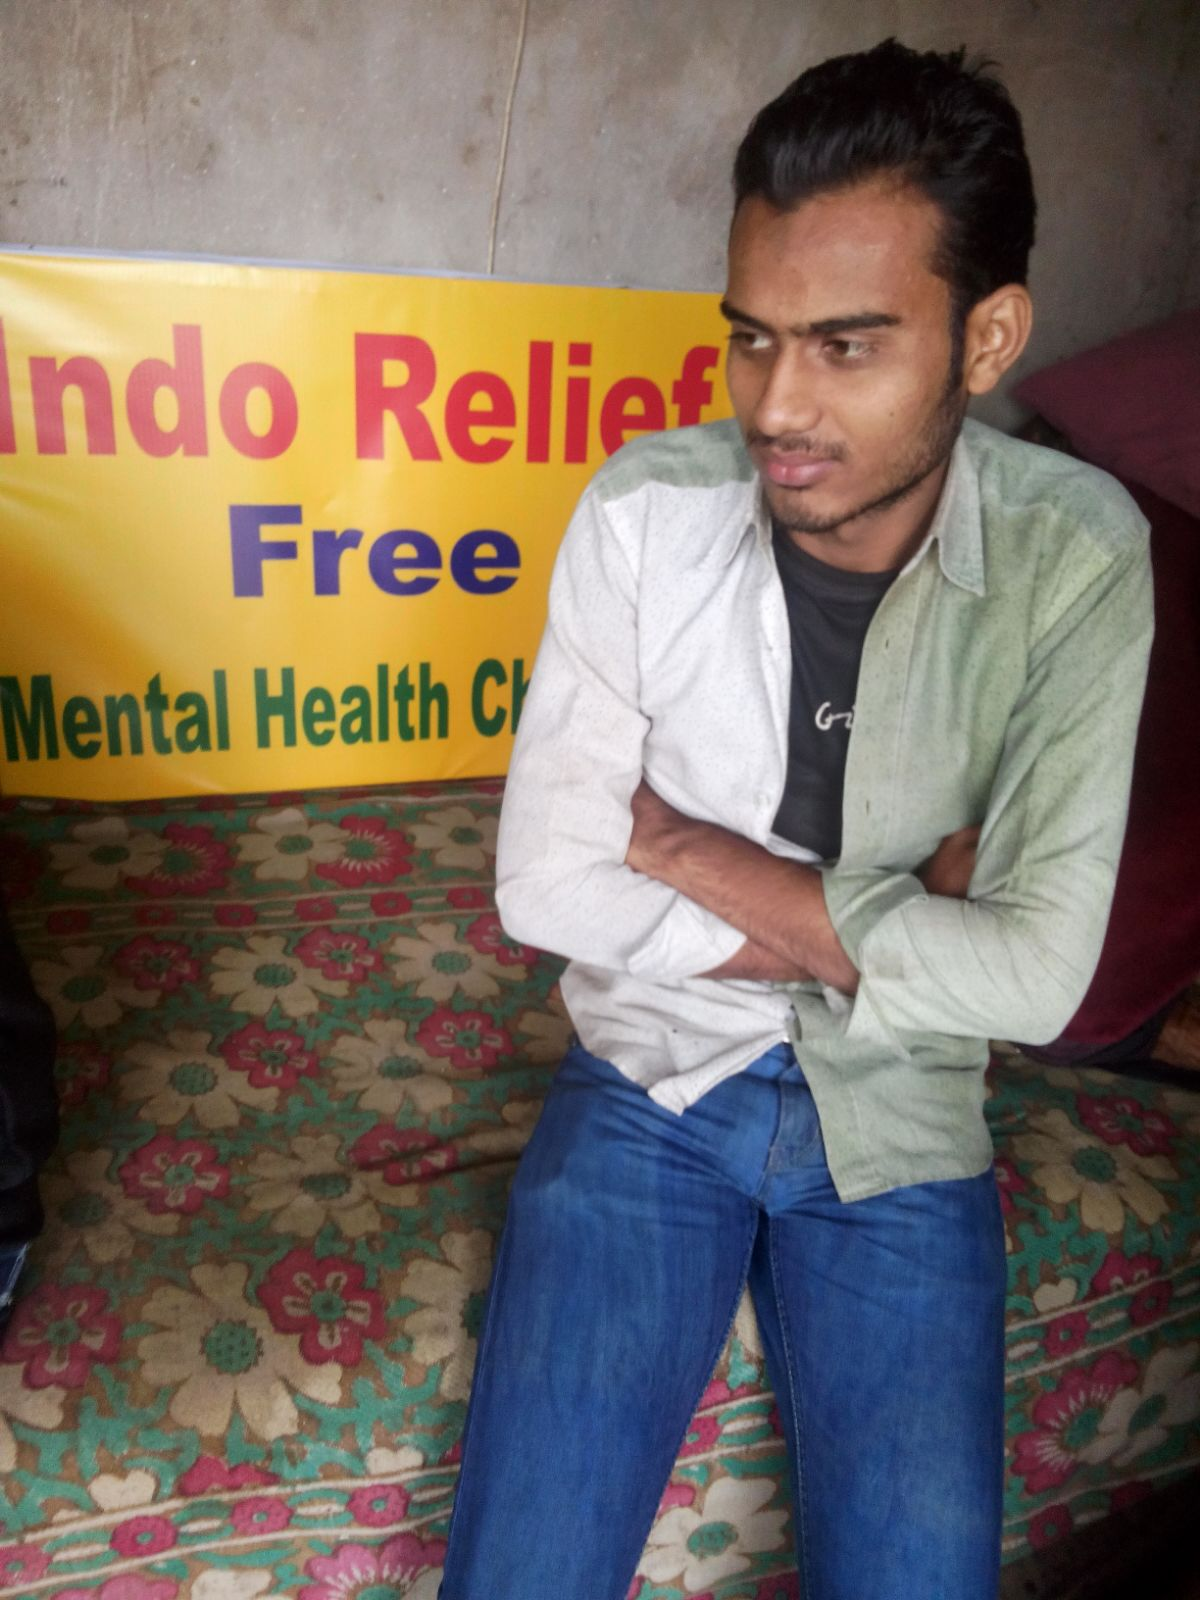 This Murad. He had never heard of mental illness. He wanted to learn more about it.